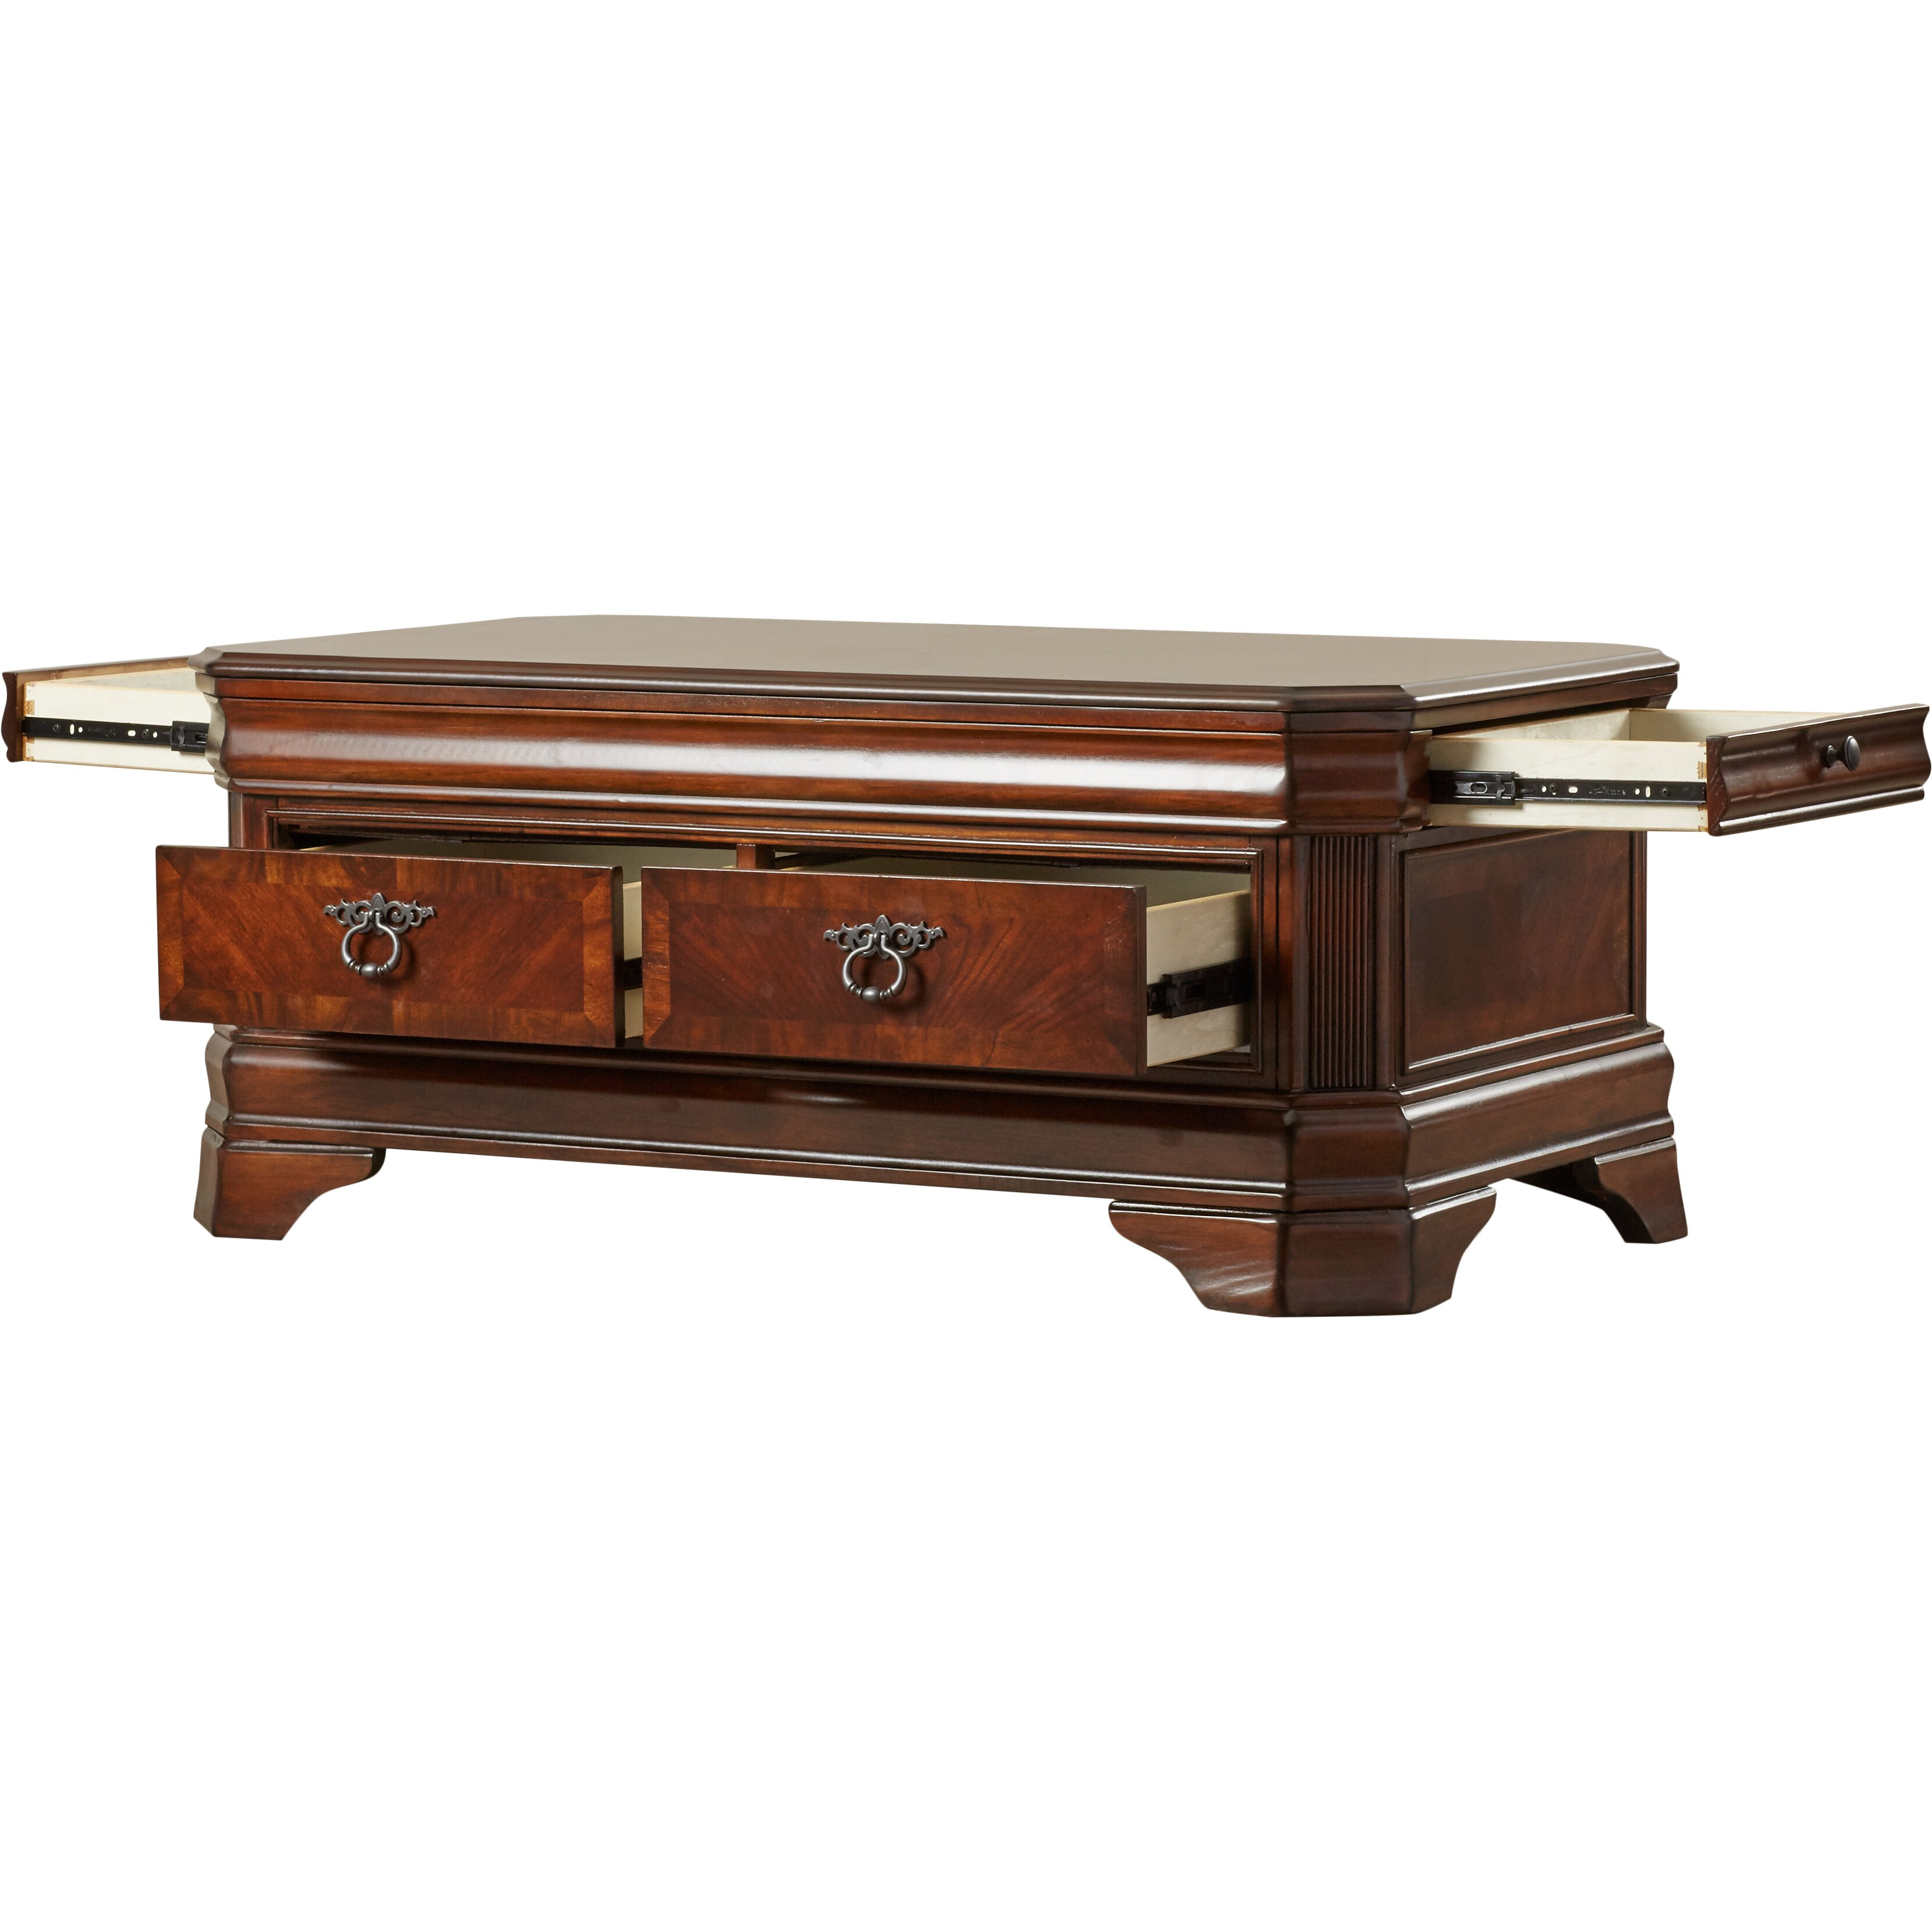 Darby Home Co Trunk Coffee Table With Lift Top Reviews Wayfair